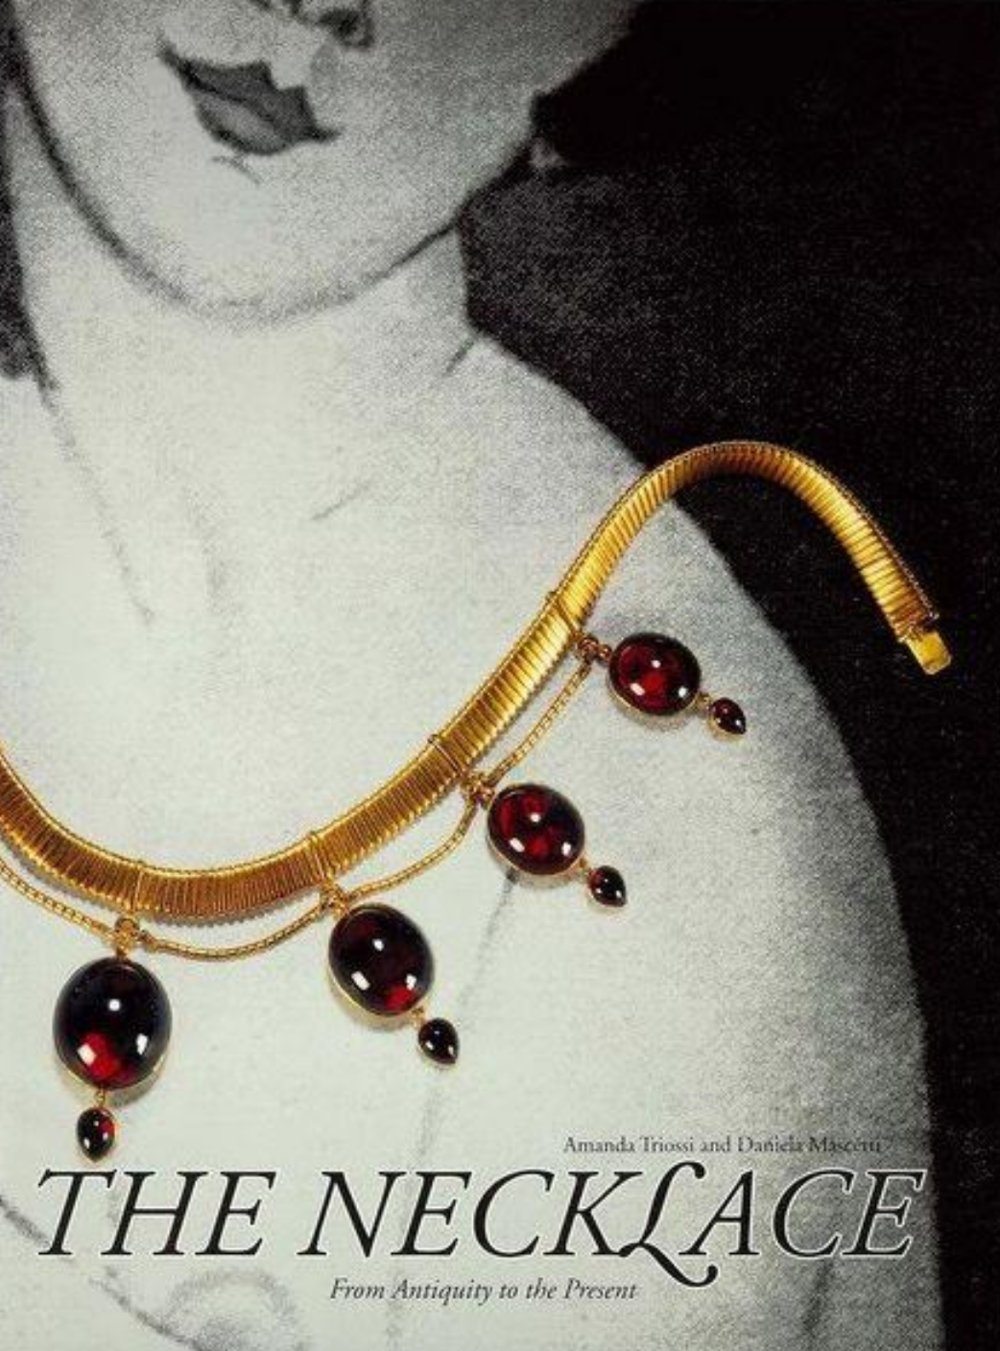 The Necklace: From Antiquity to the Present